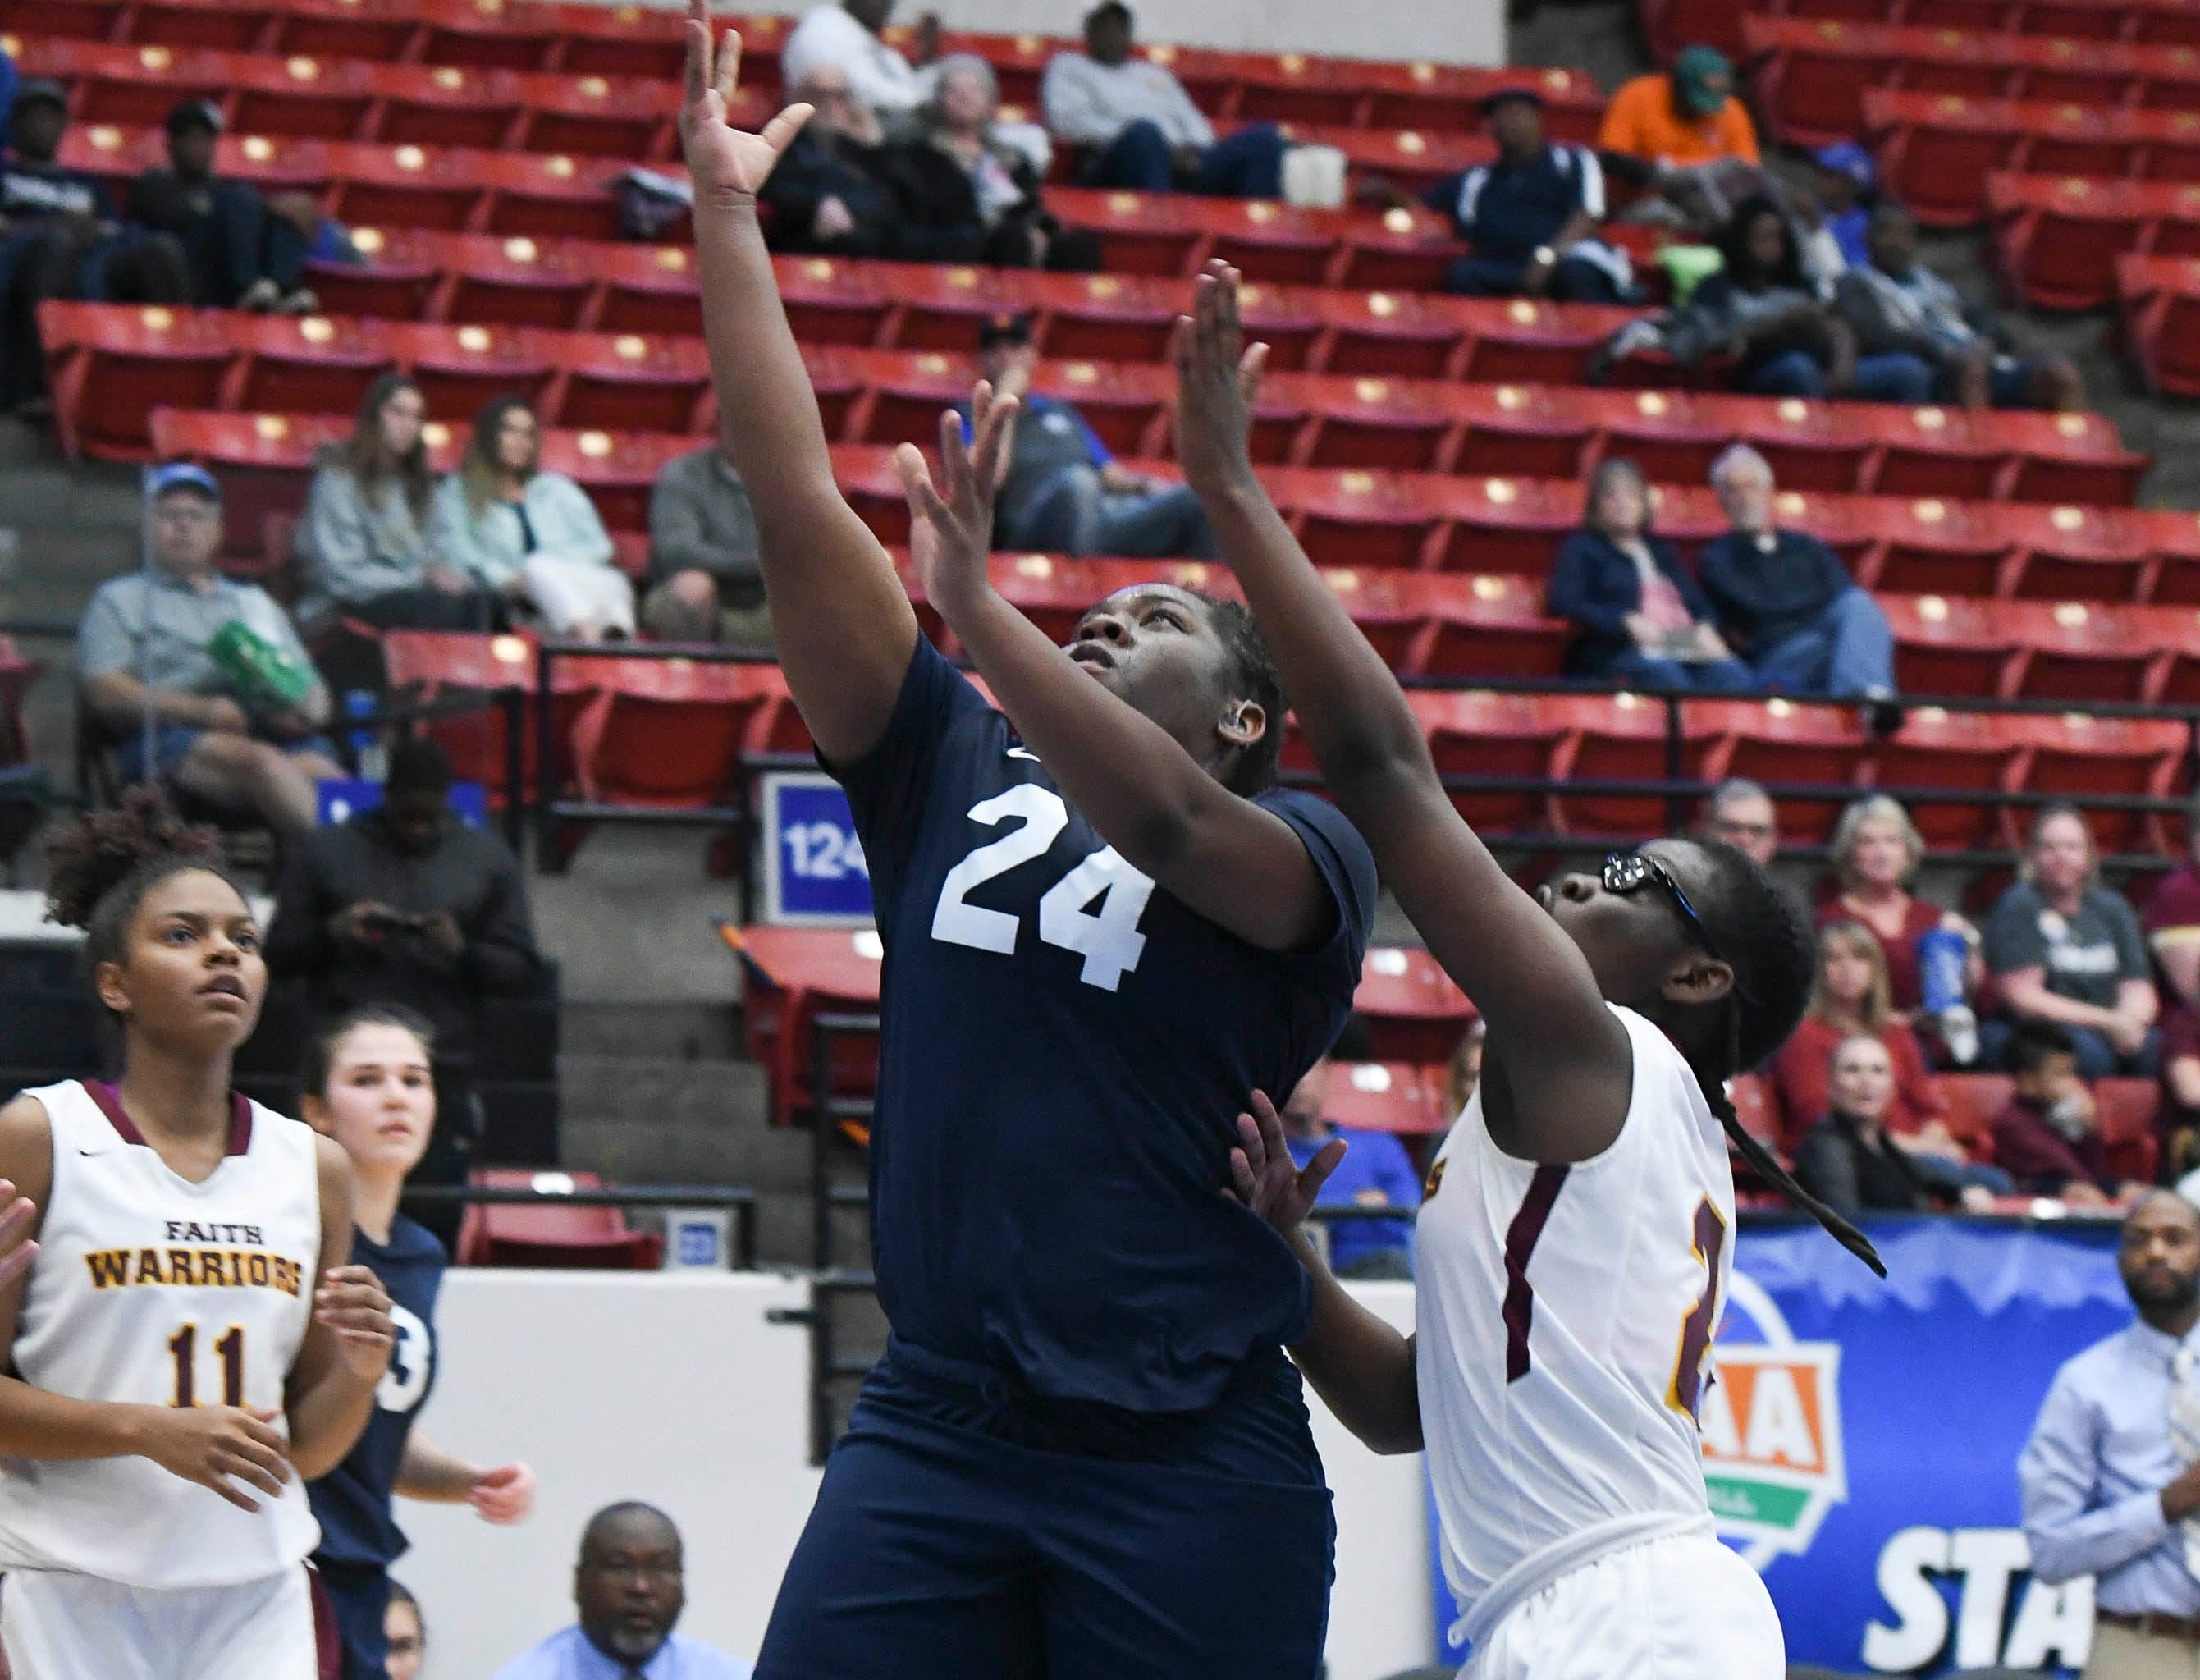 Ashaunti Rolle of Florida Prep shoots over Bayshore Christian defender Ari Royal during Tuesday's Class 2A state championship game.